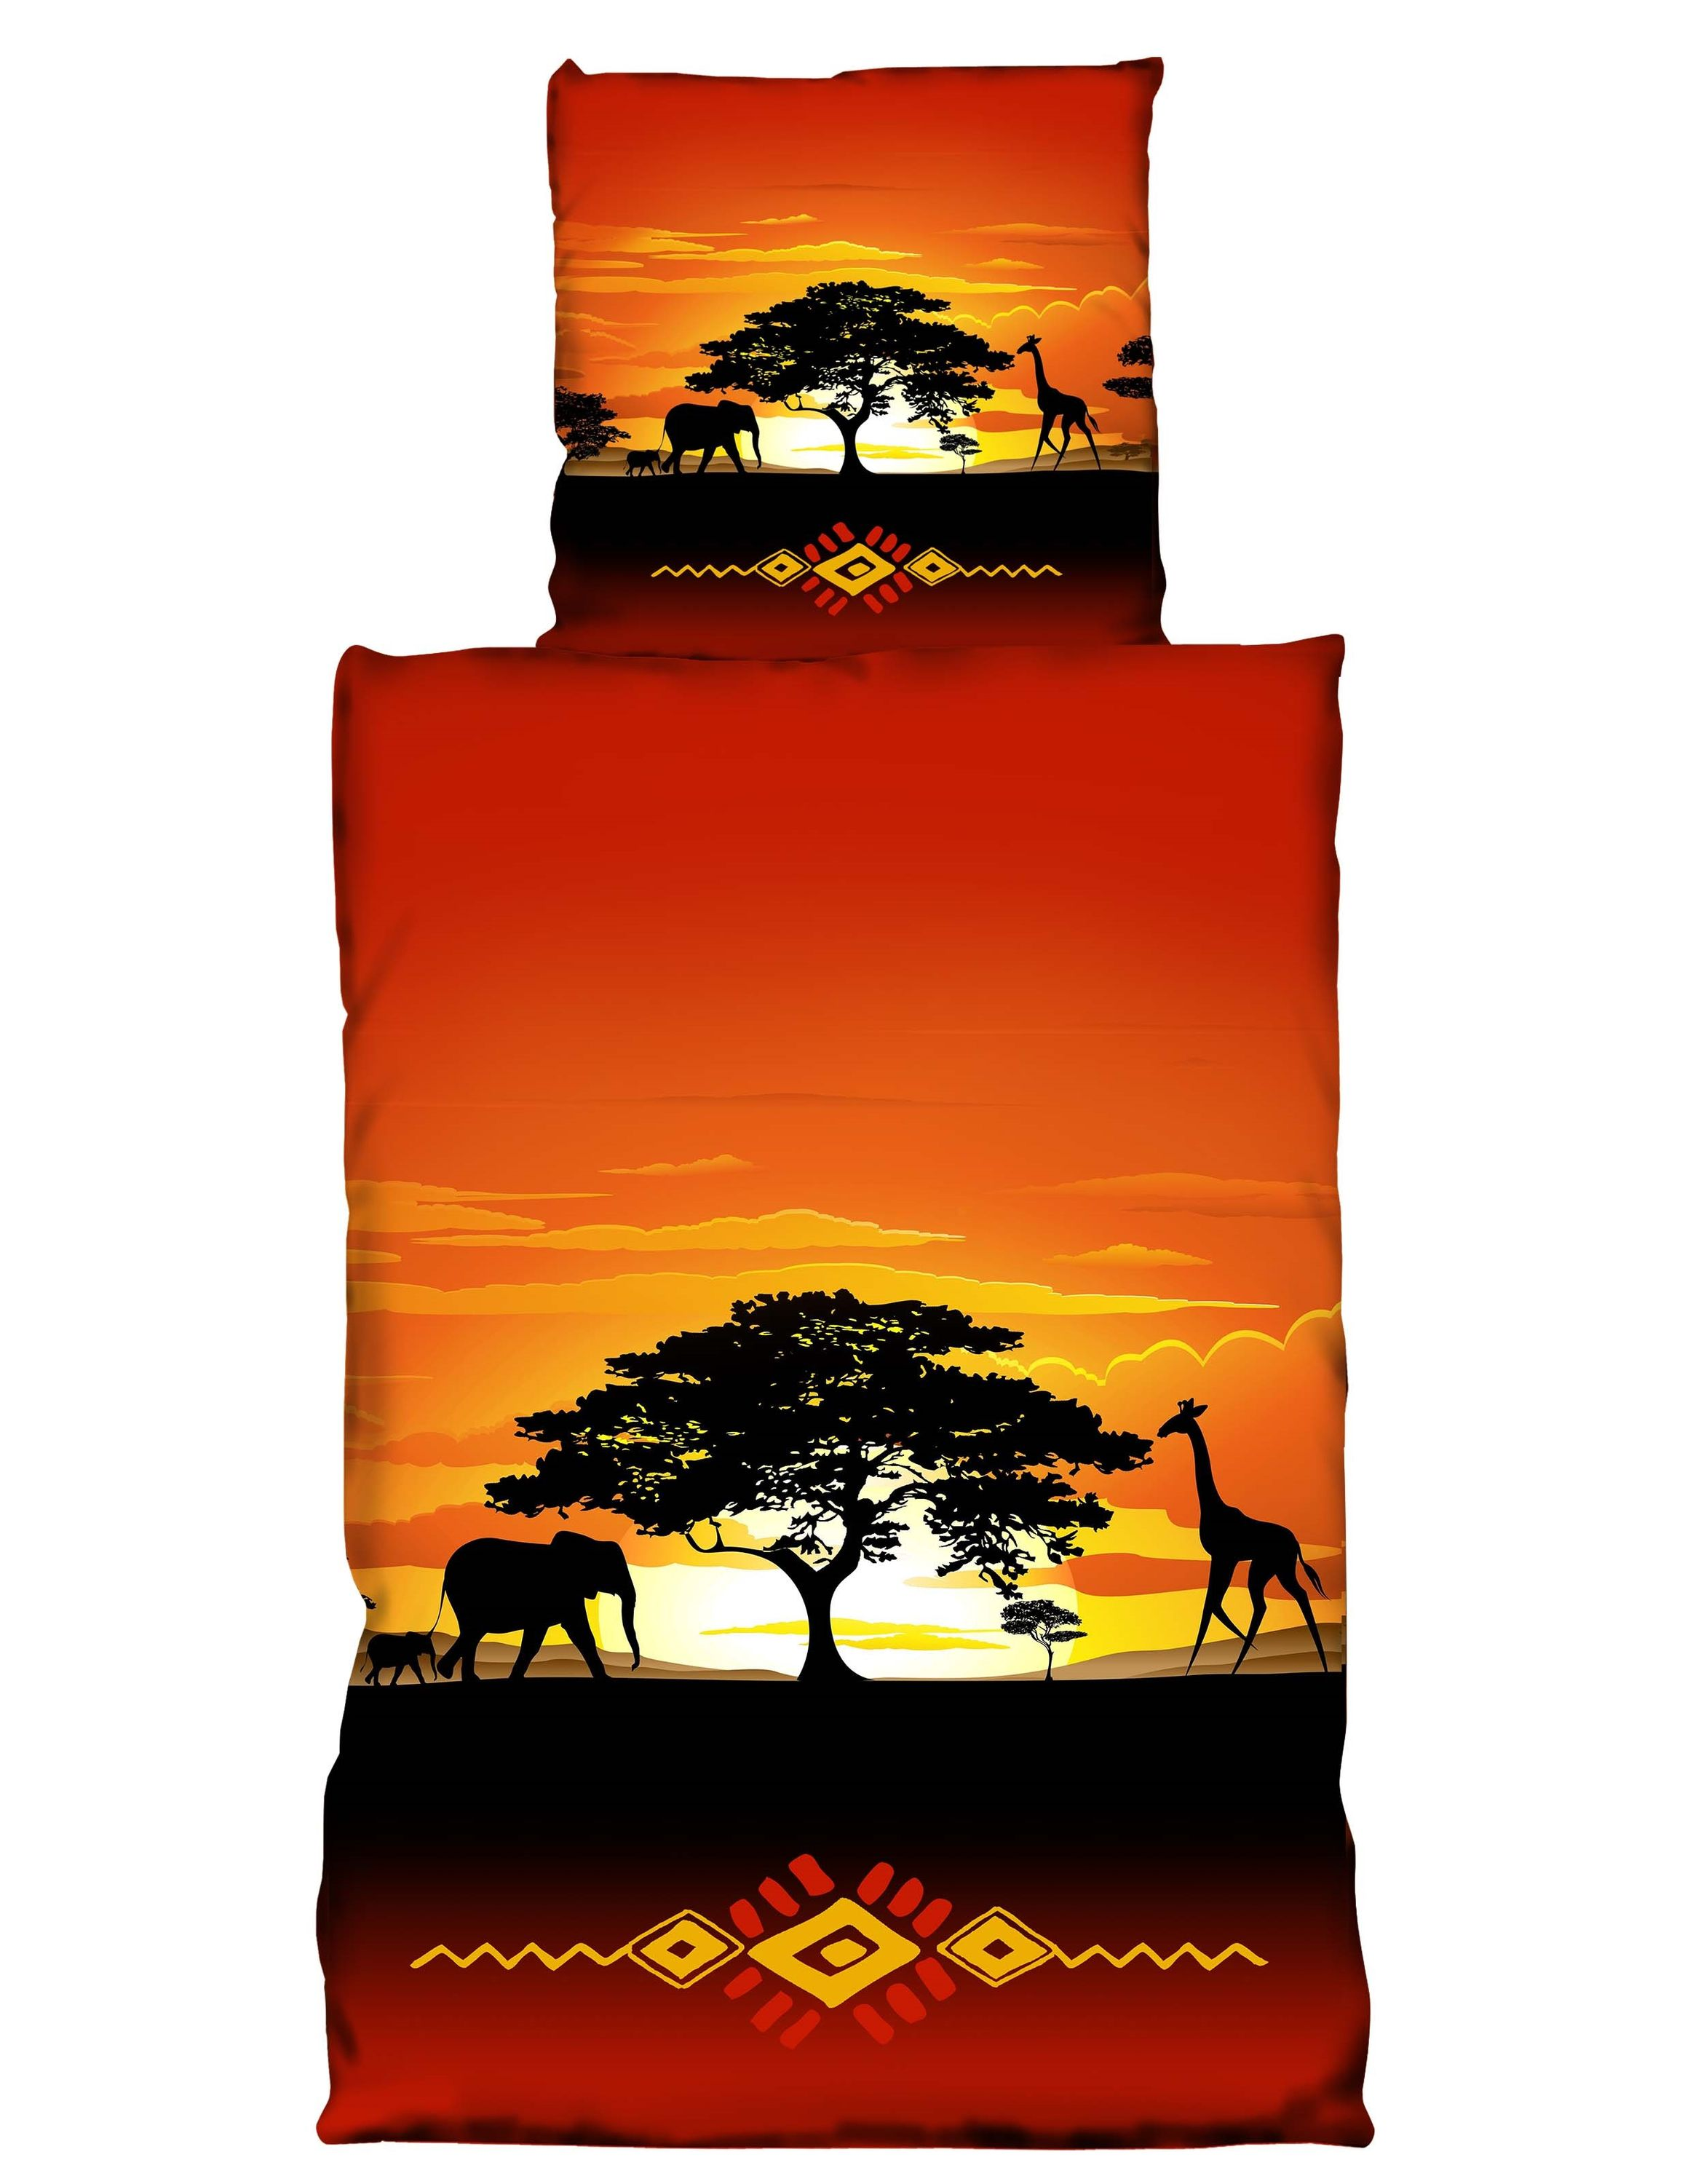 4 tlg bettw sche 135x200cm afrika safari terra microfaser premiumdruck bettw sche microfaser. Black Bedroom Furniture Sets. Home Design Ideas